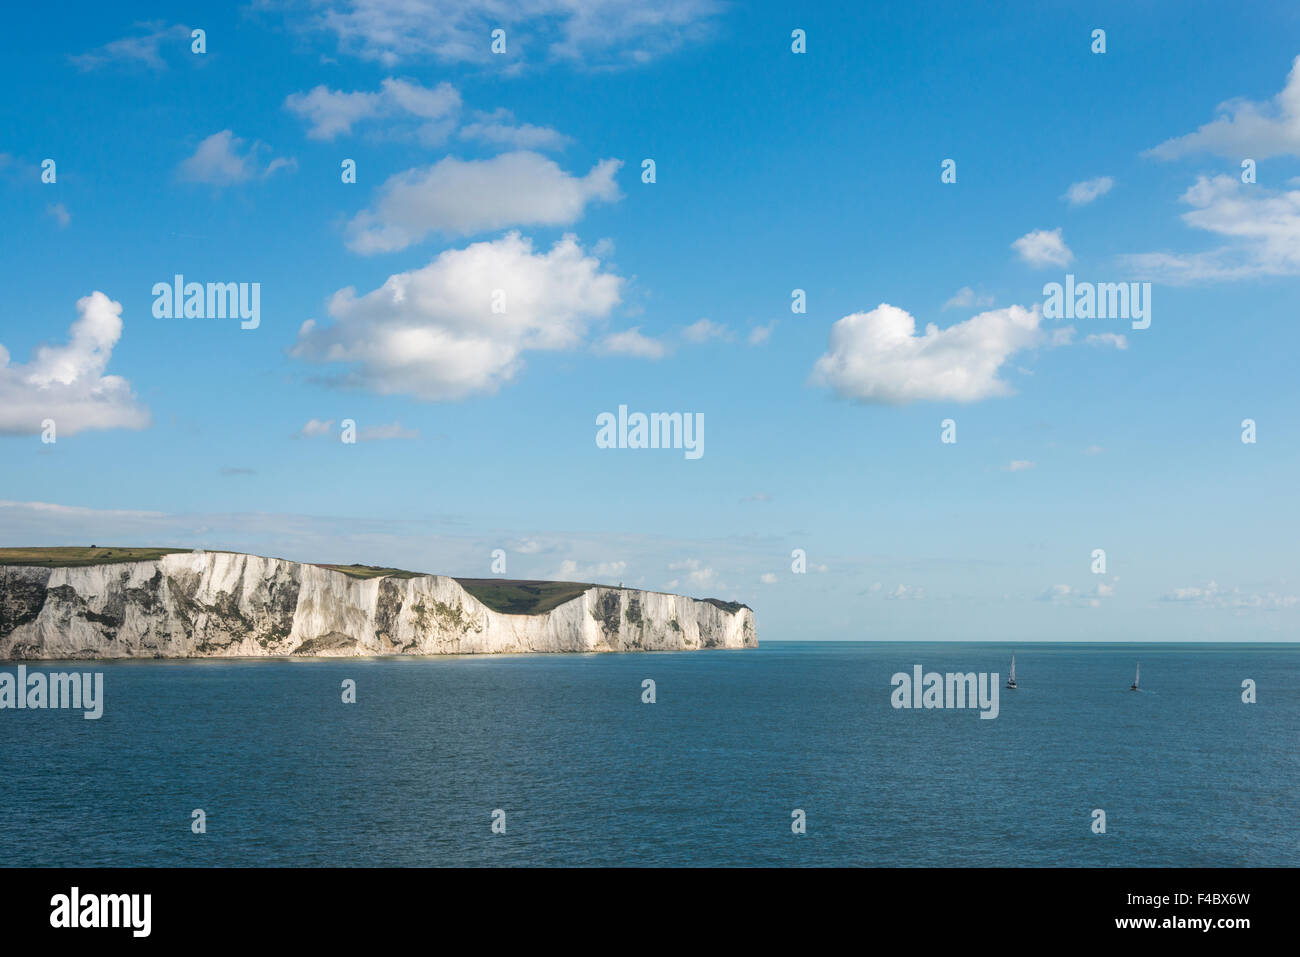 The White cliffs of Dover on the South coast of the UK - Stock Image